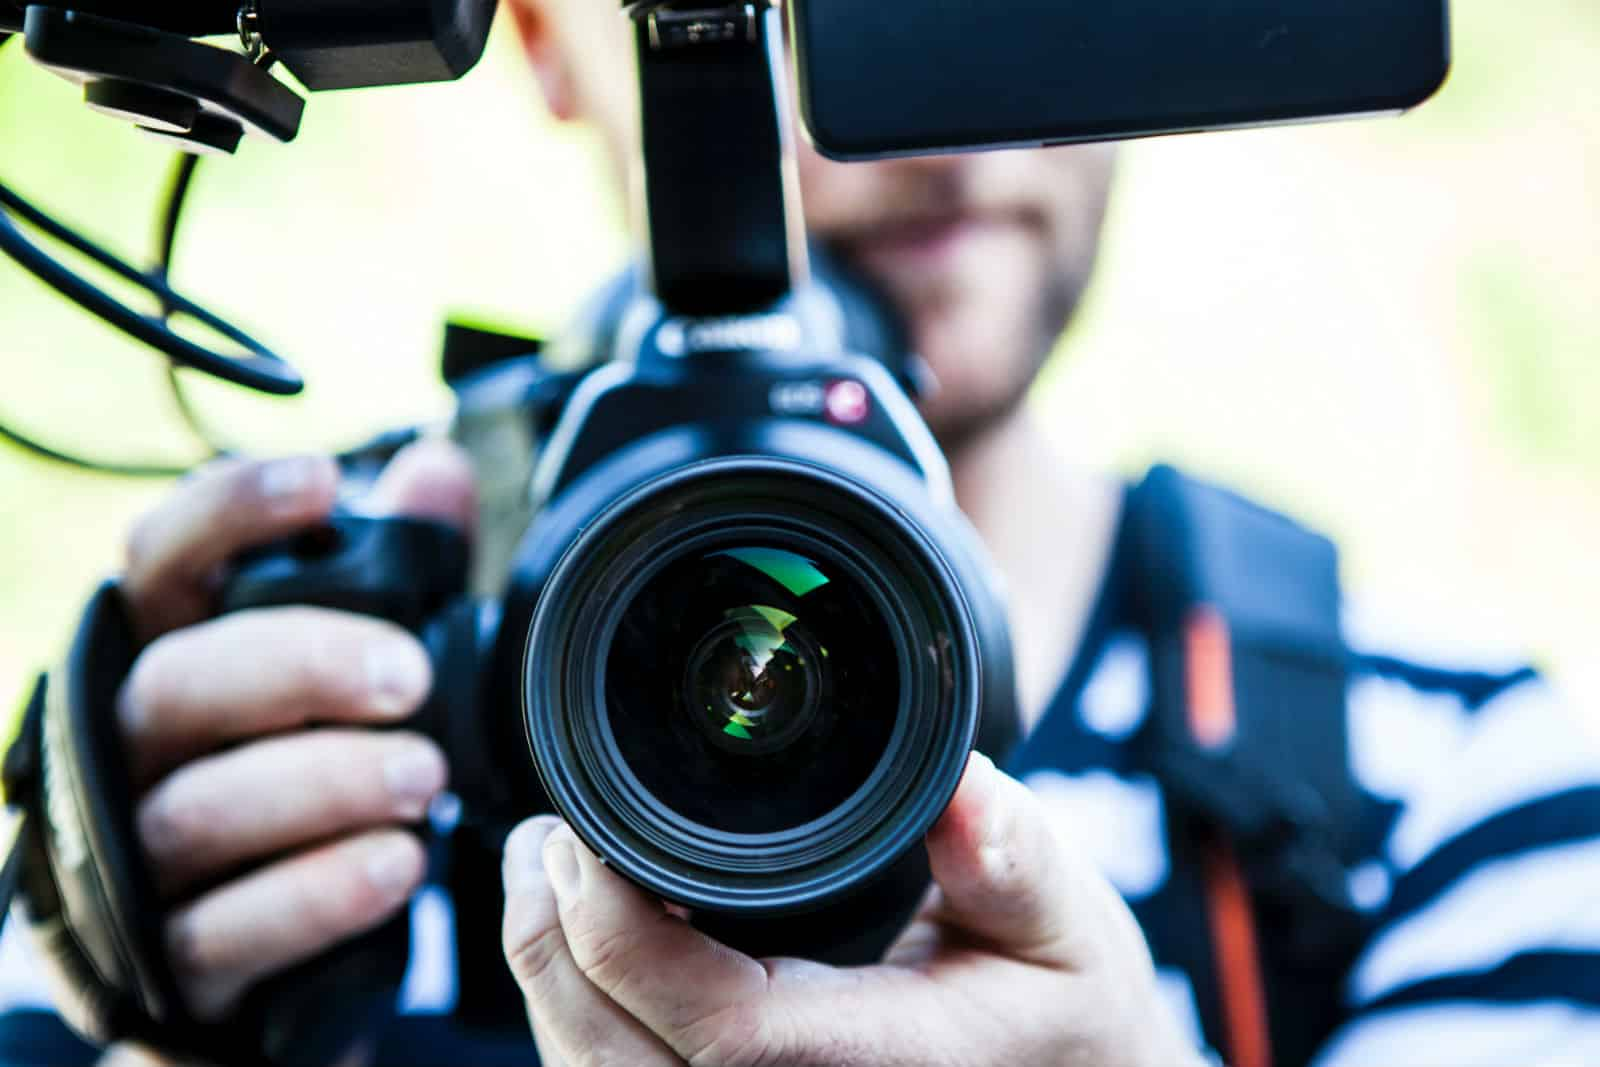 Video app promotion: Making a killer video could be the best way to promote your app.